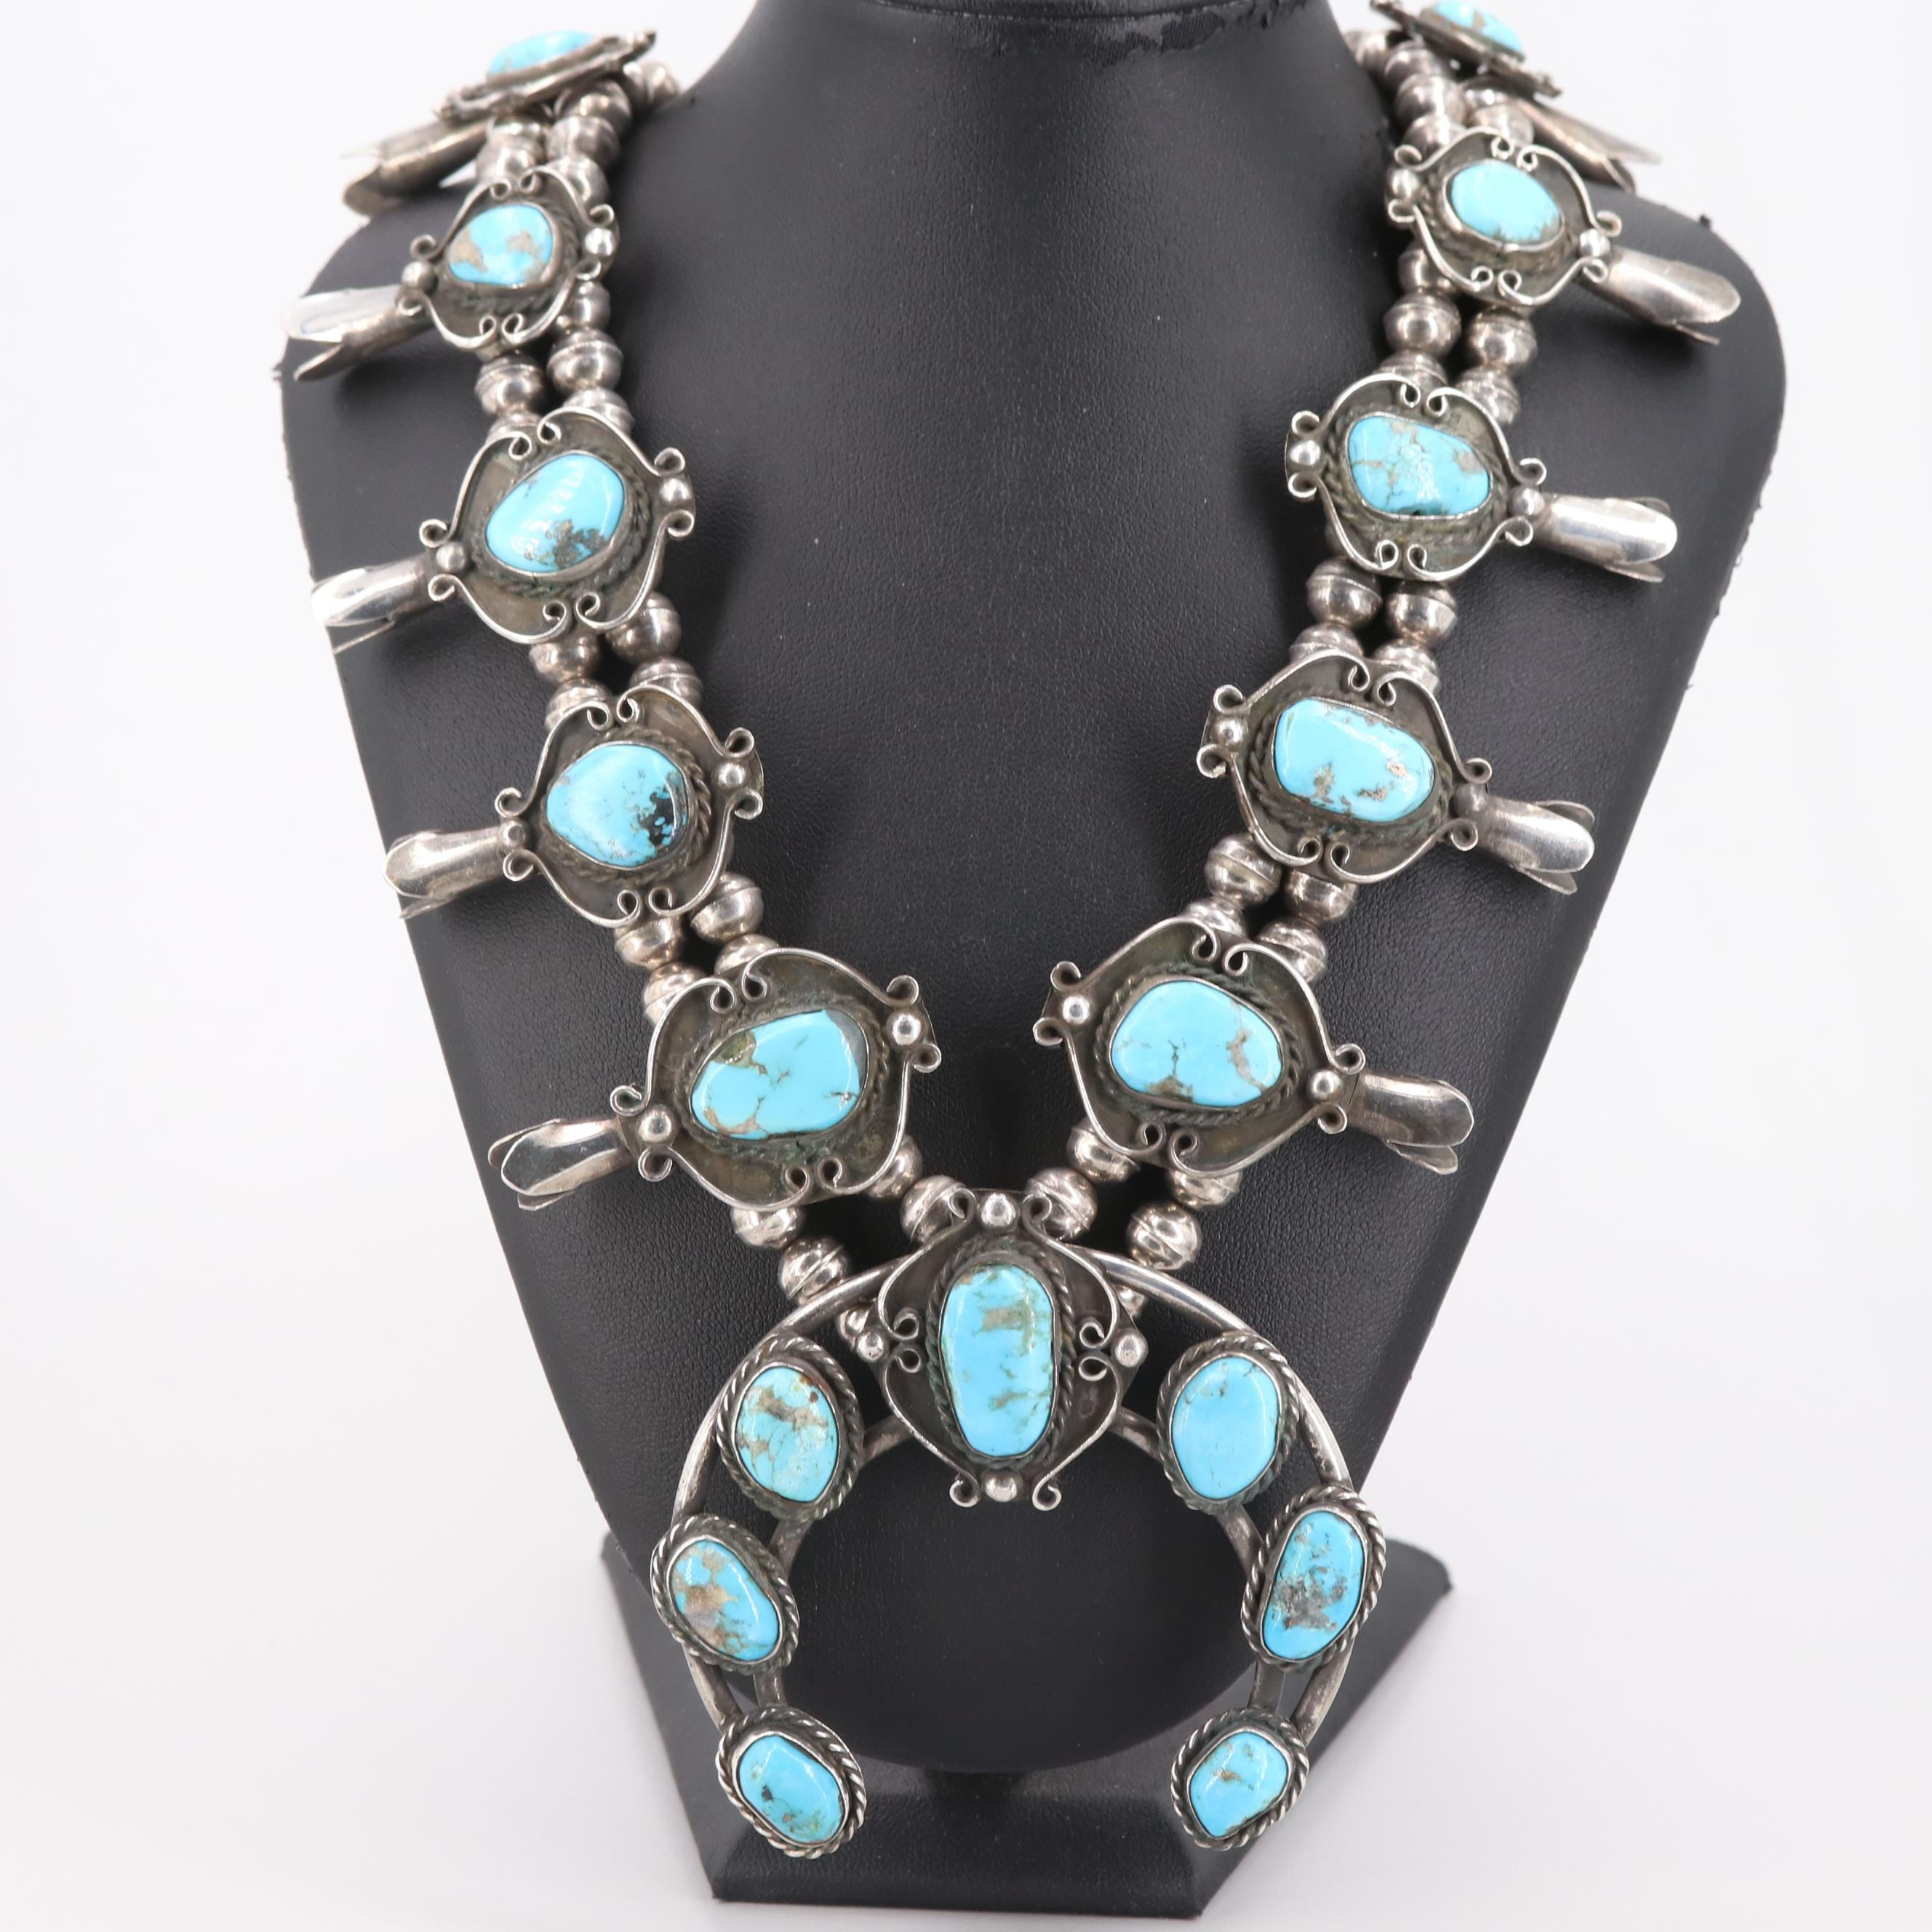 Southwestern 900 Silver Turquoise Squash Blossom Beaded Necklace